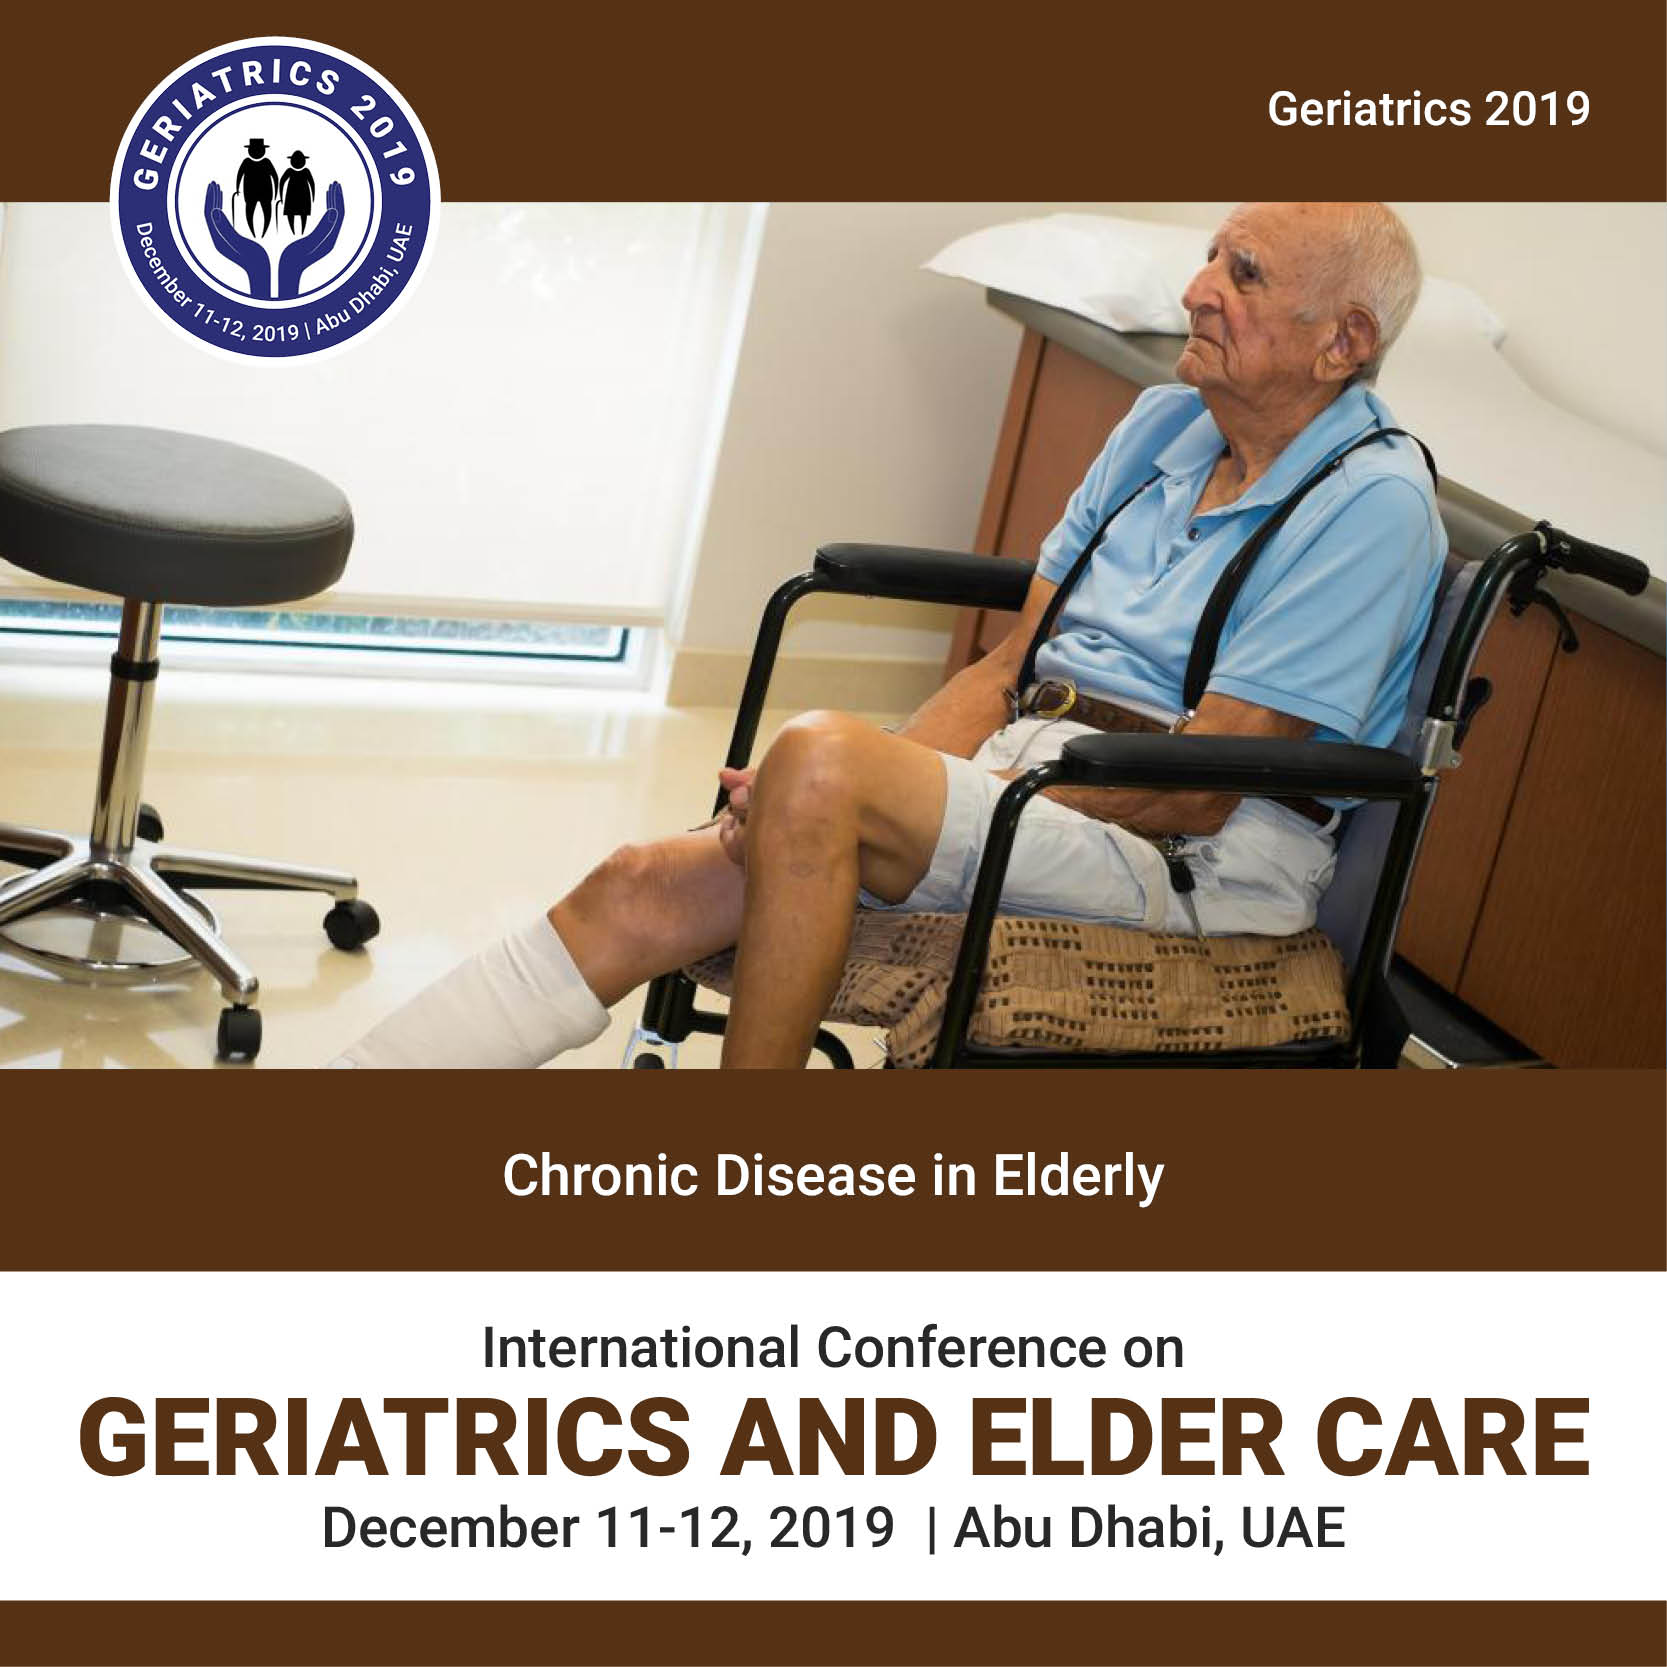 Chronic Disease in Elderly Photo